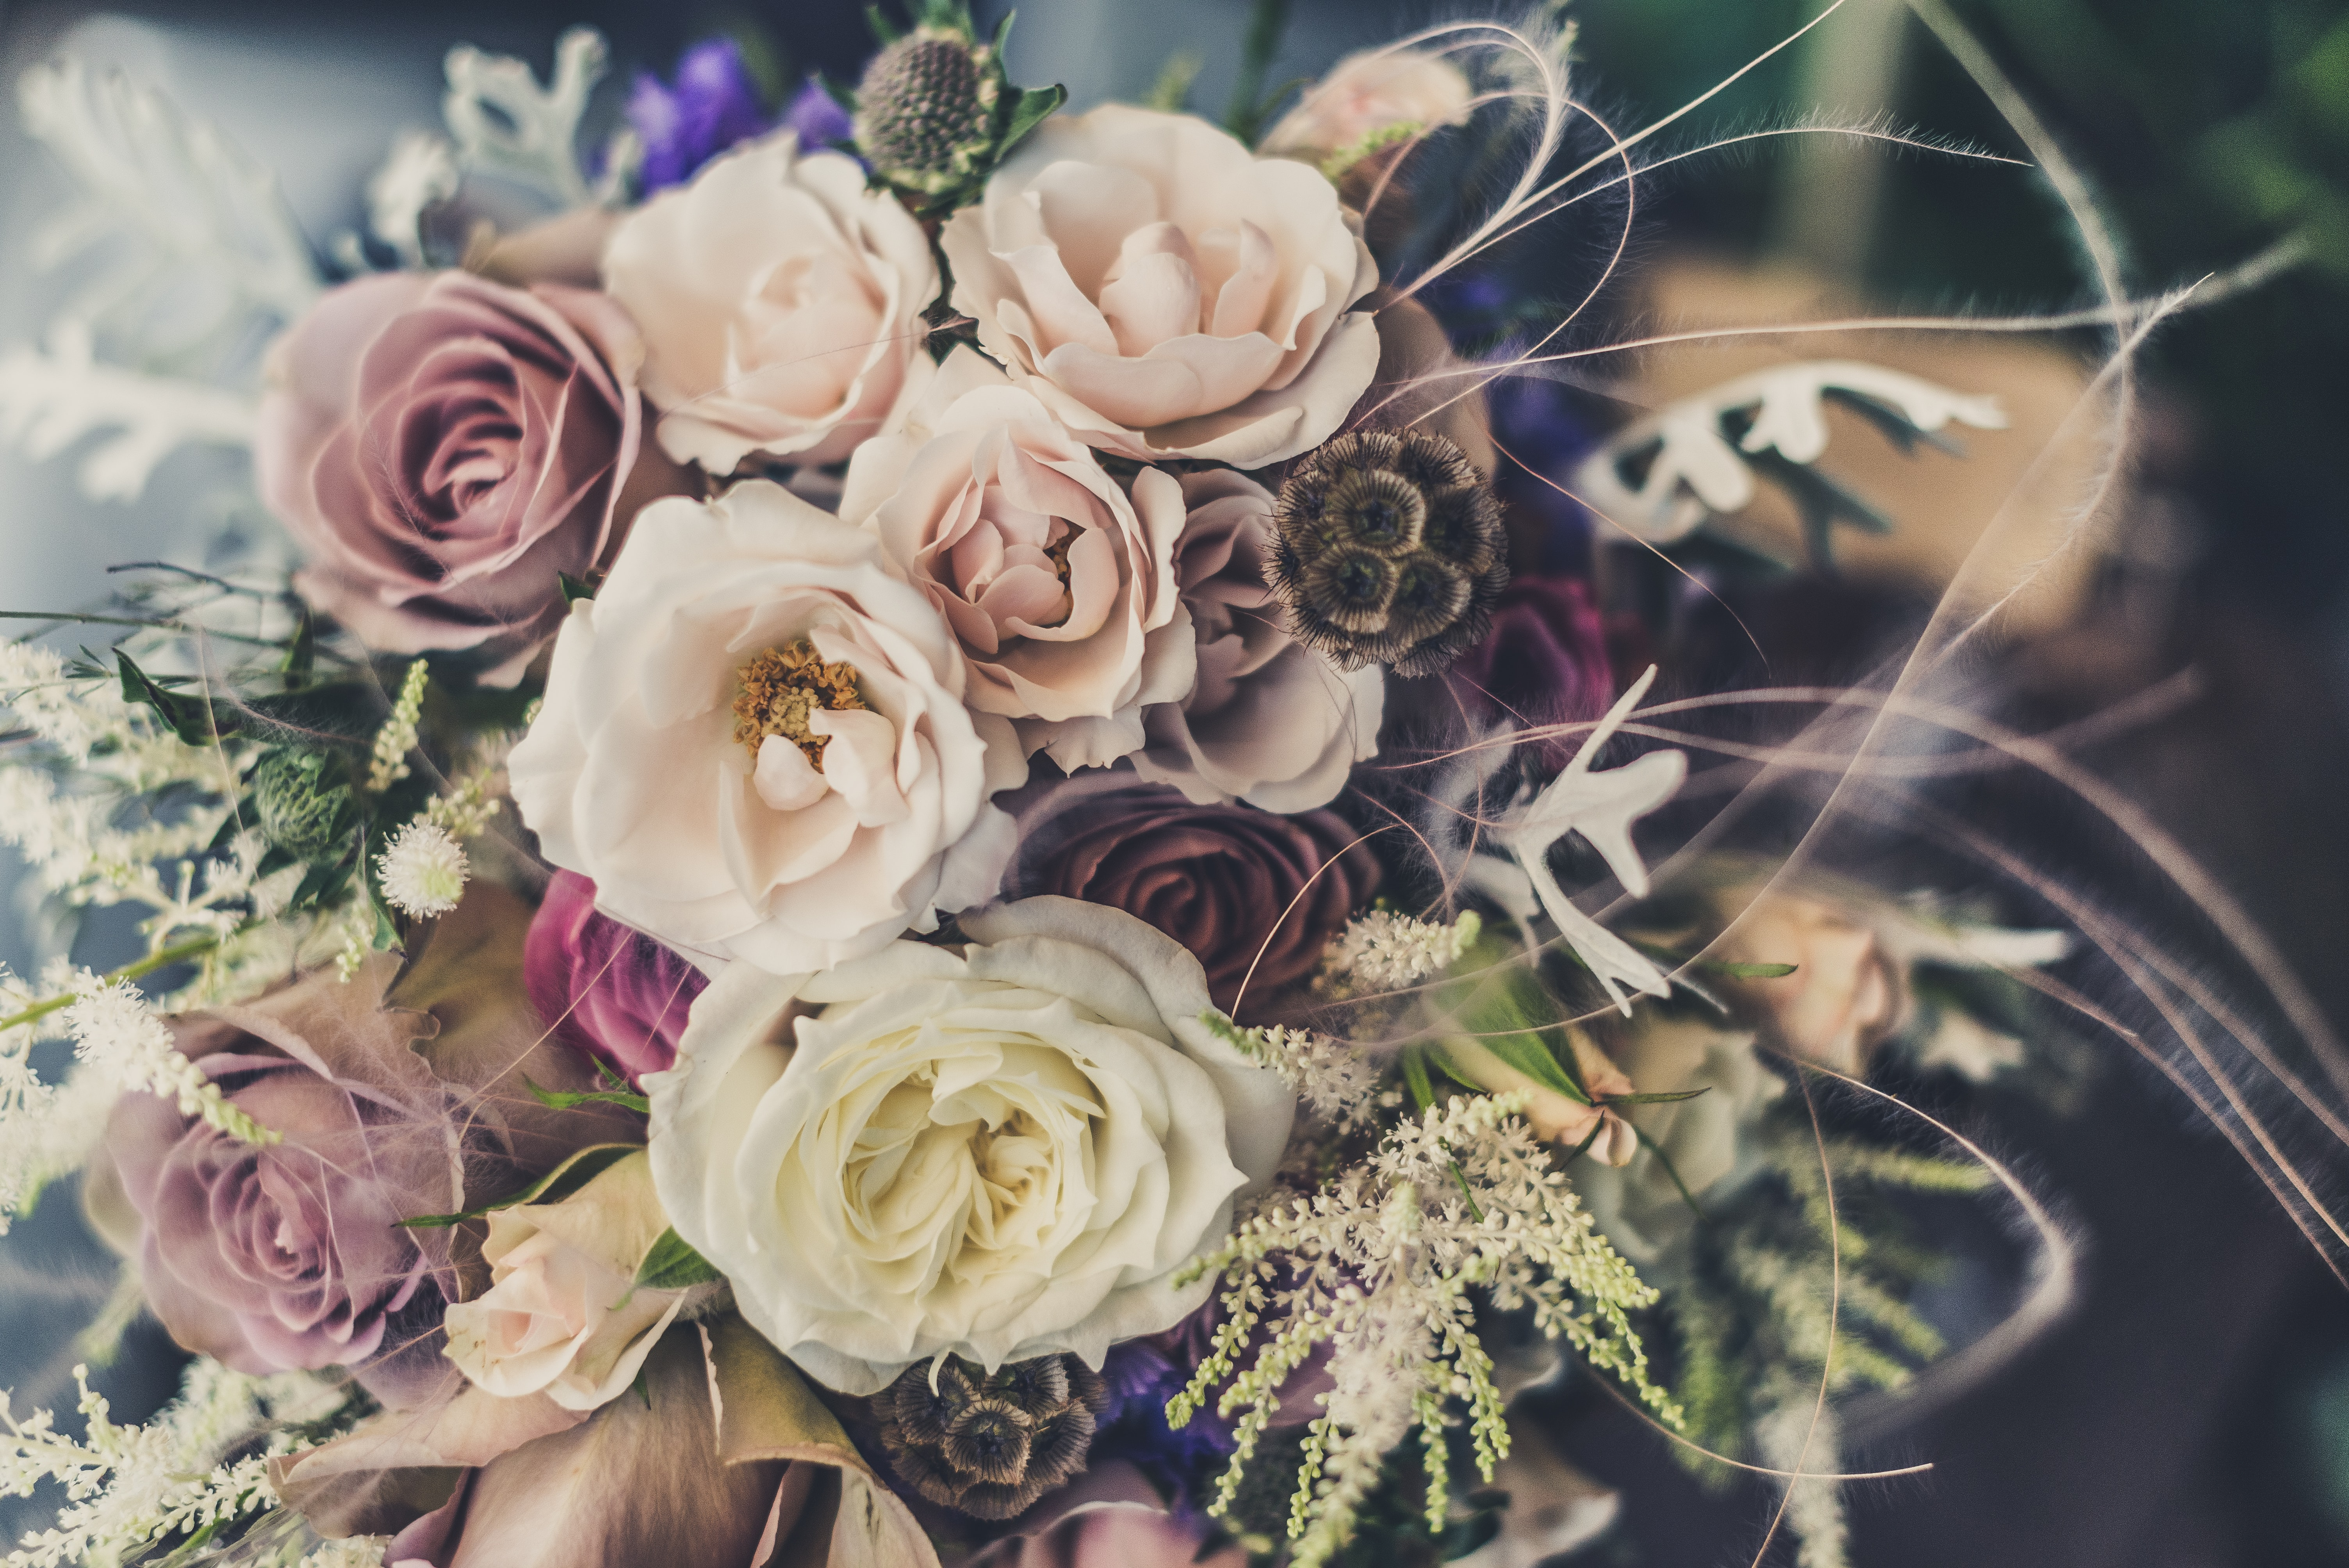 A large bouquet of roses in pastel colors